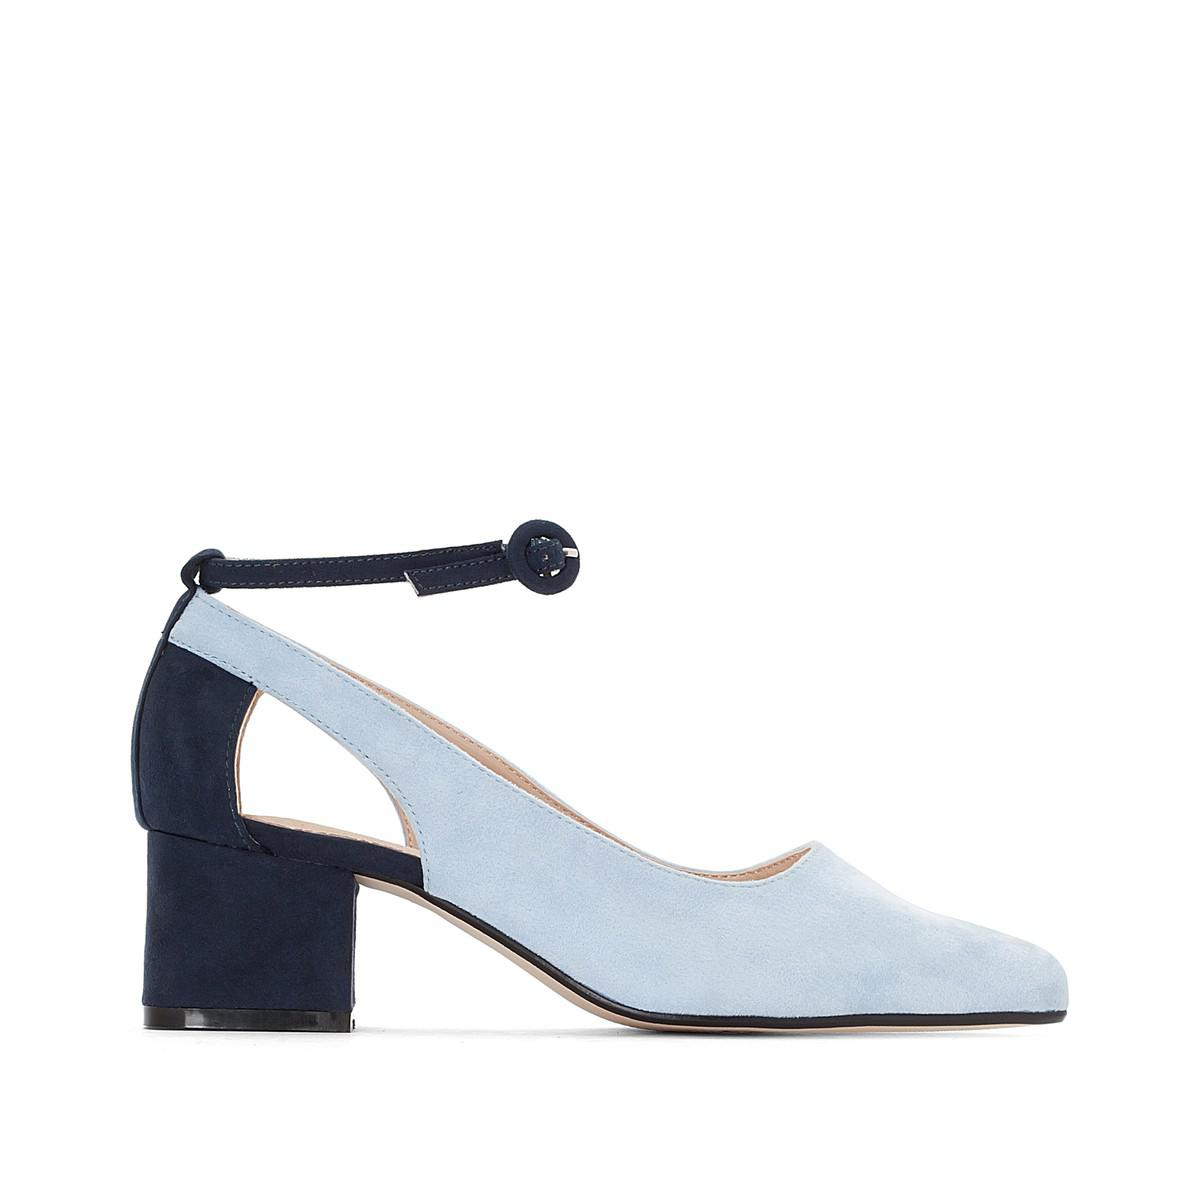 2d4bf6ade00d Lyst - La Redoute Ballet Pumps With Twisted Detail in Blue